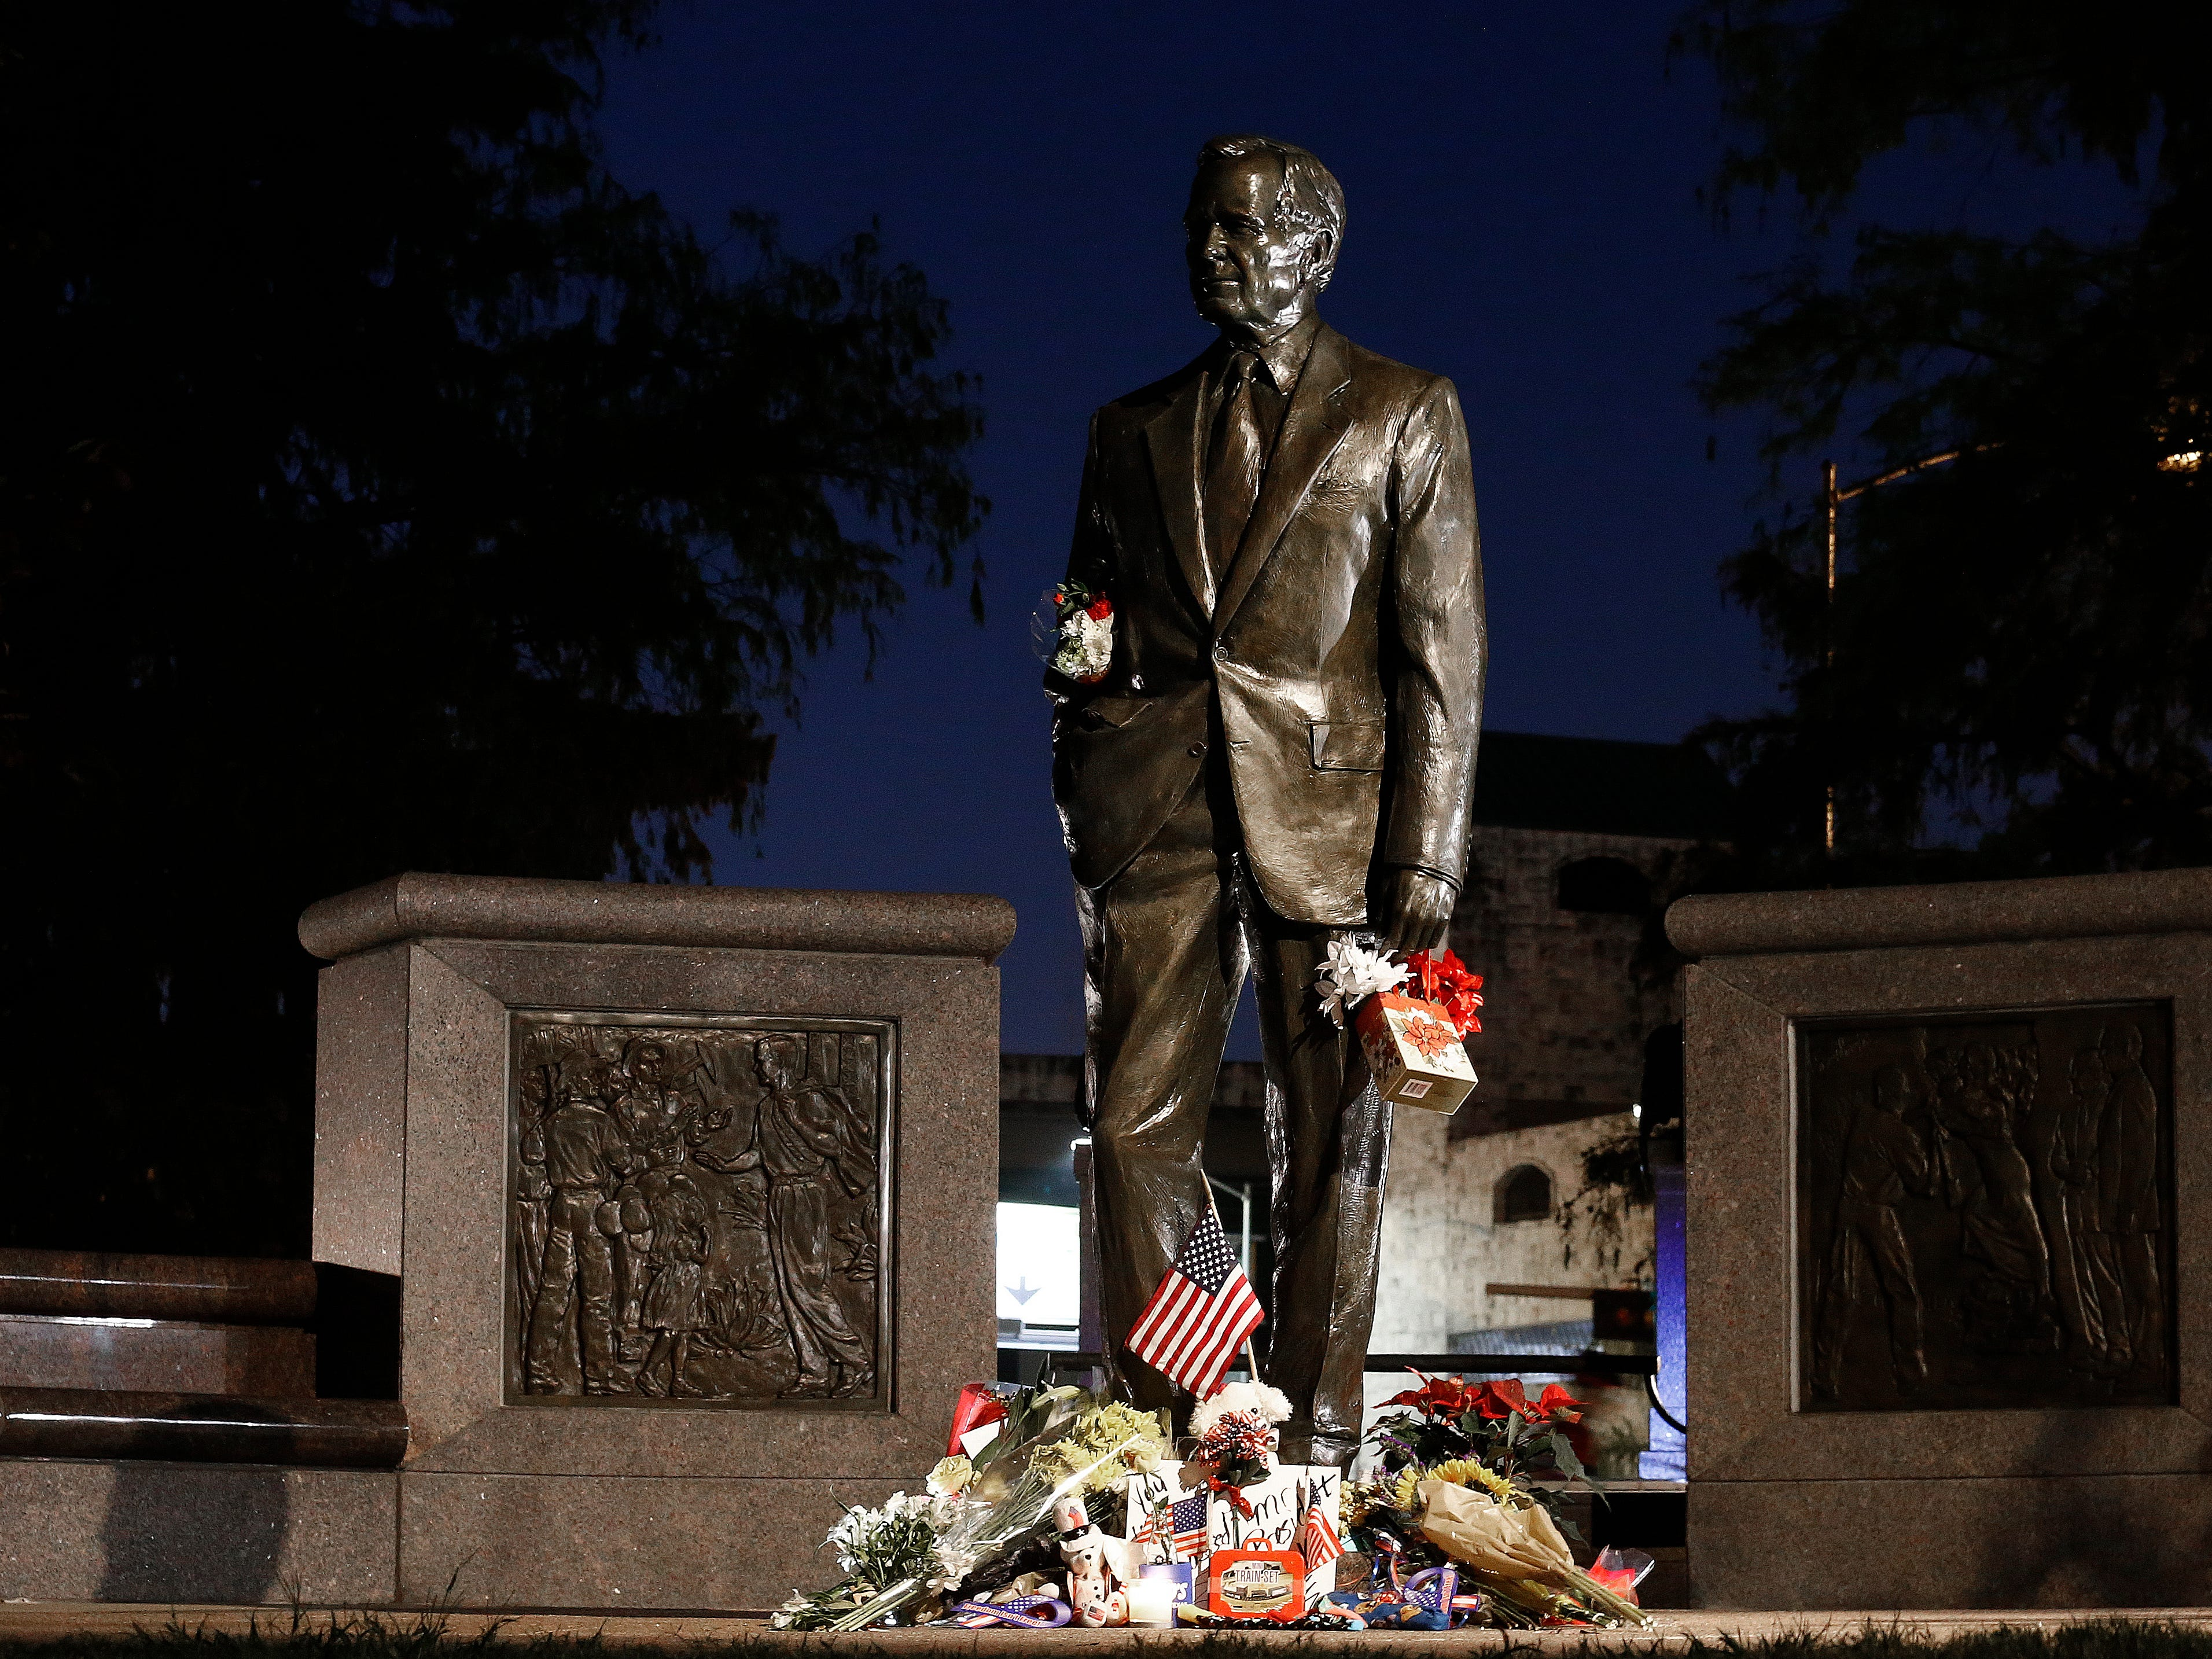 A statue of George H.W. Bush with flowers stands near downtown in Houston, Dec. 2, 2018.